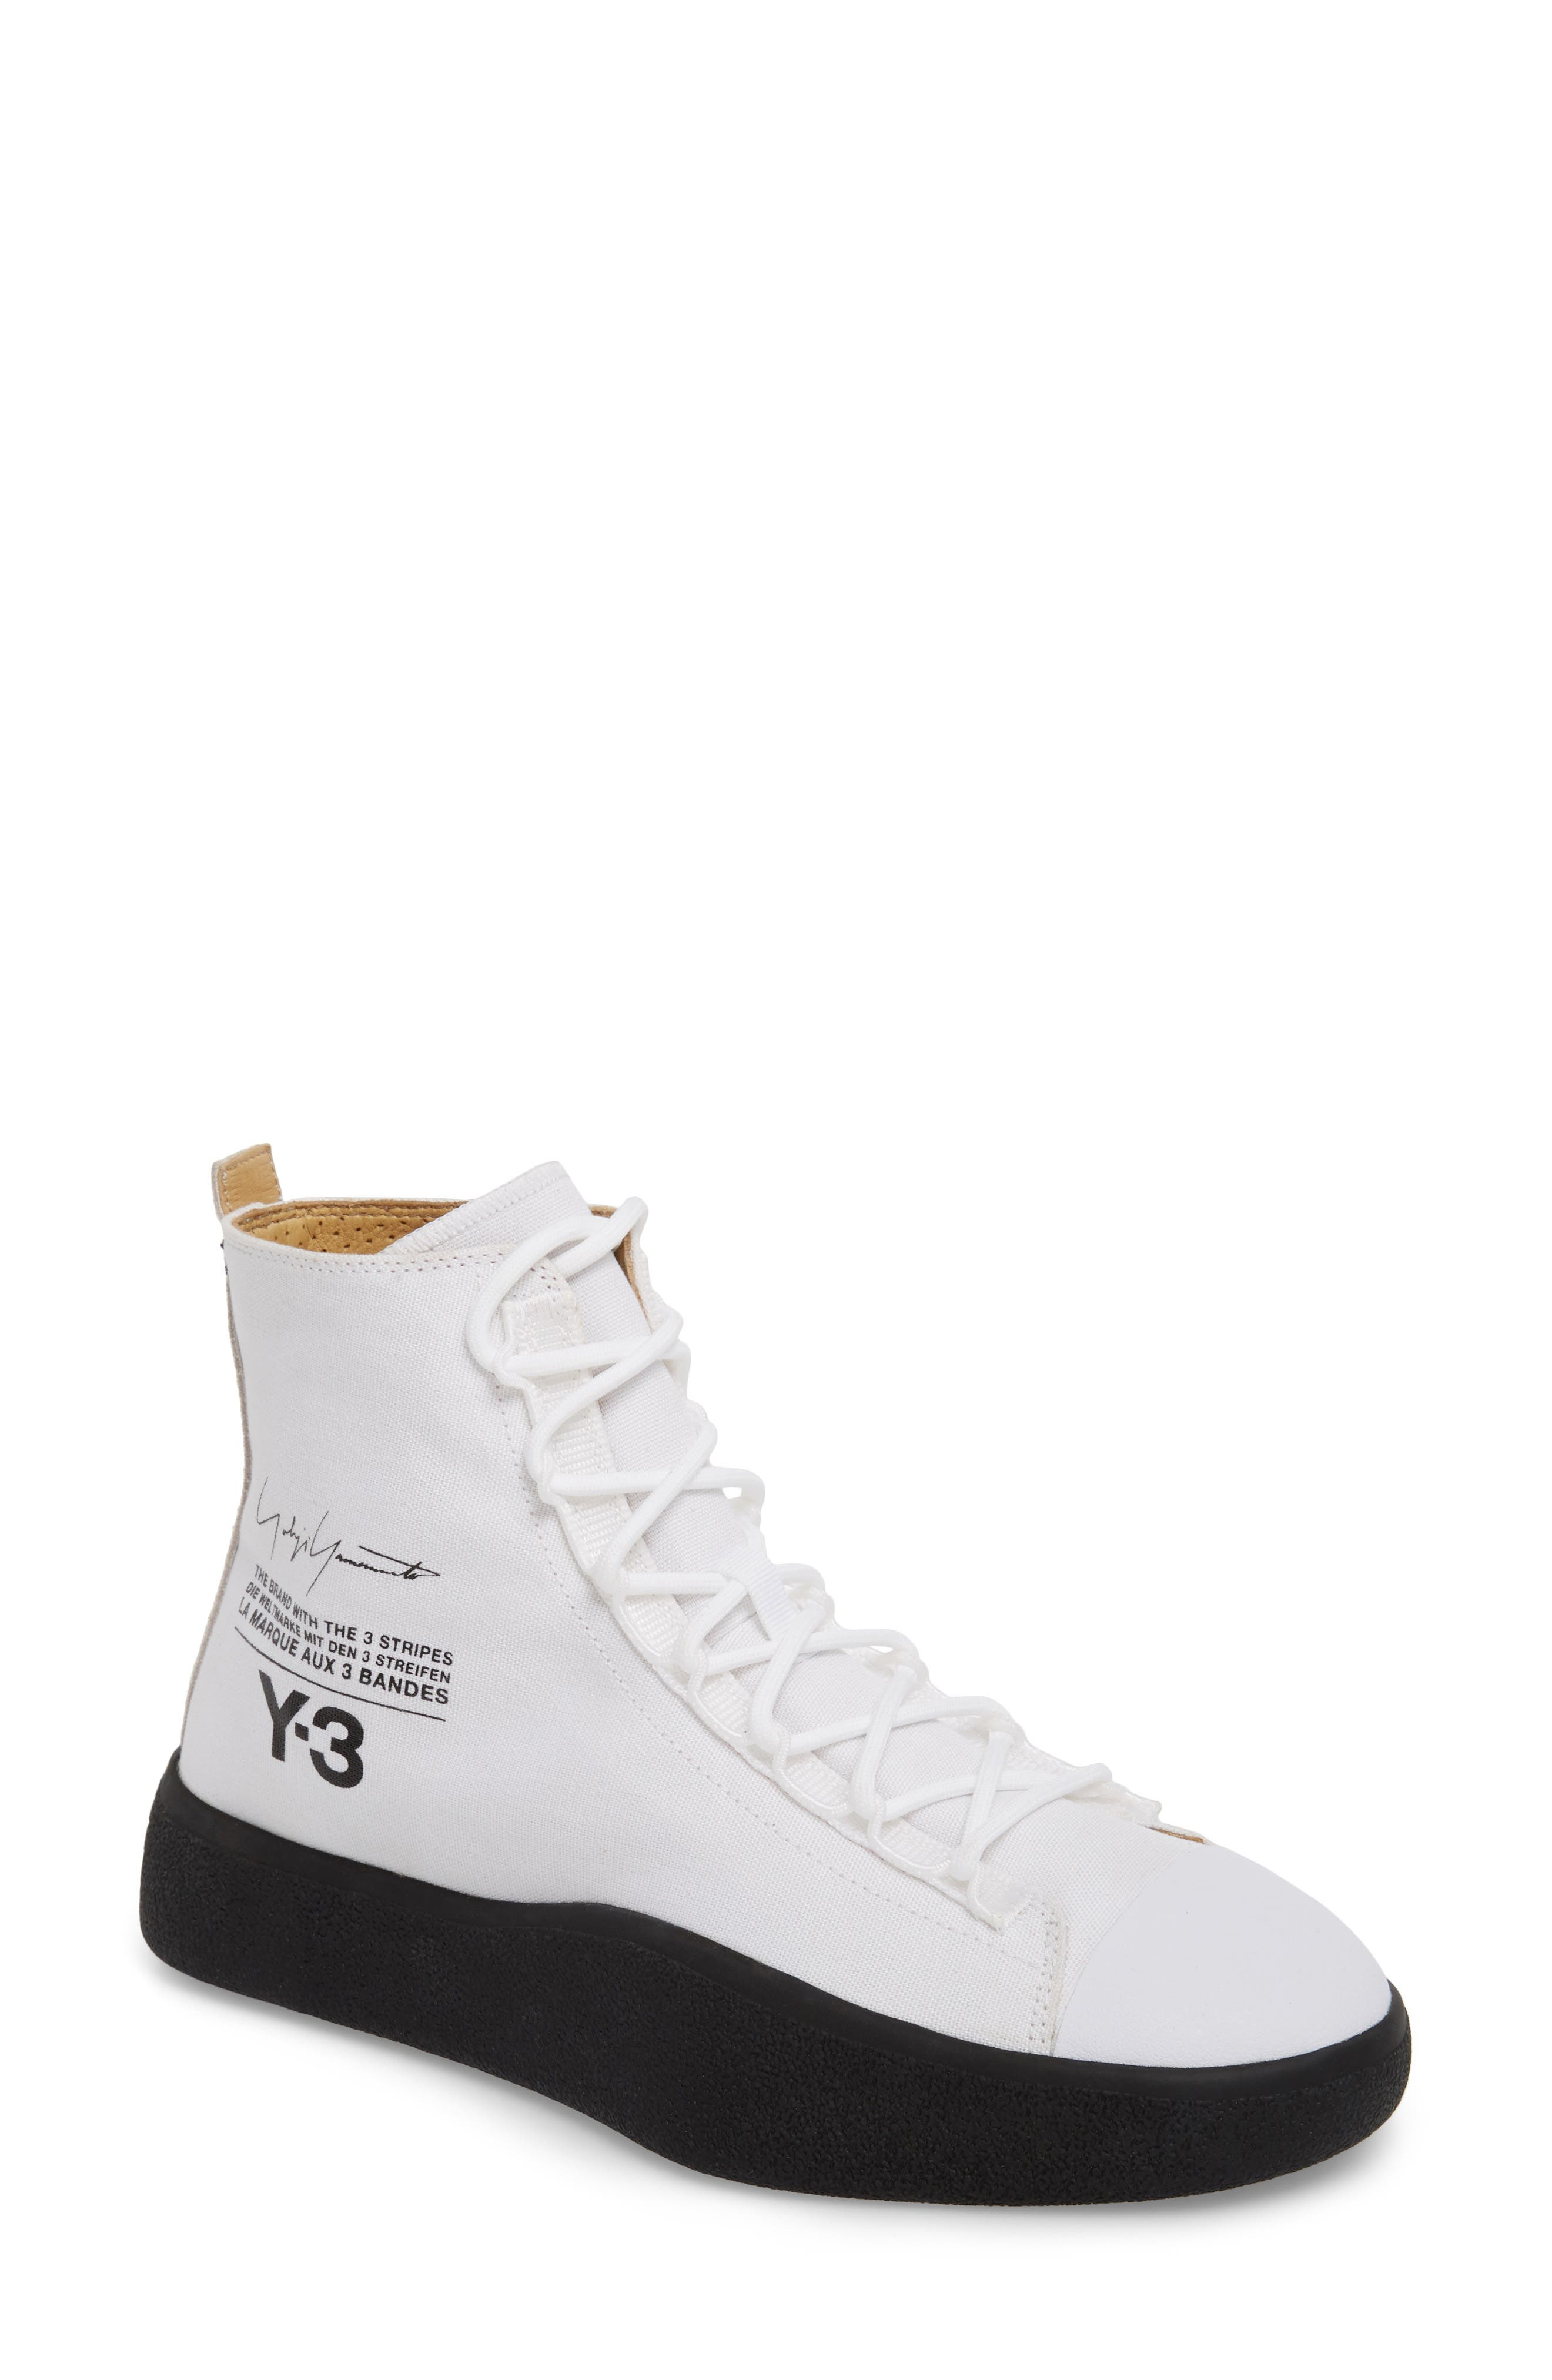 Cheap And Fine Womens Y-3 Camouflage Print Sneakers New Arrival